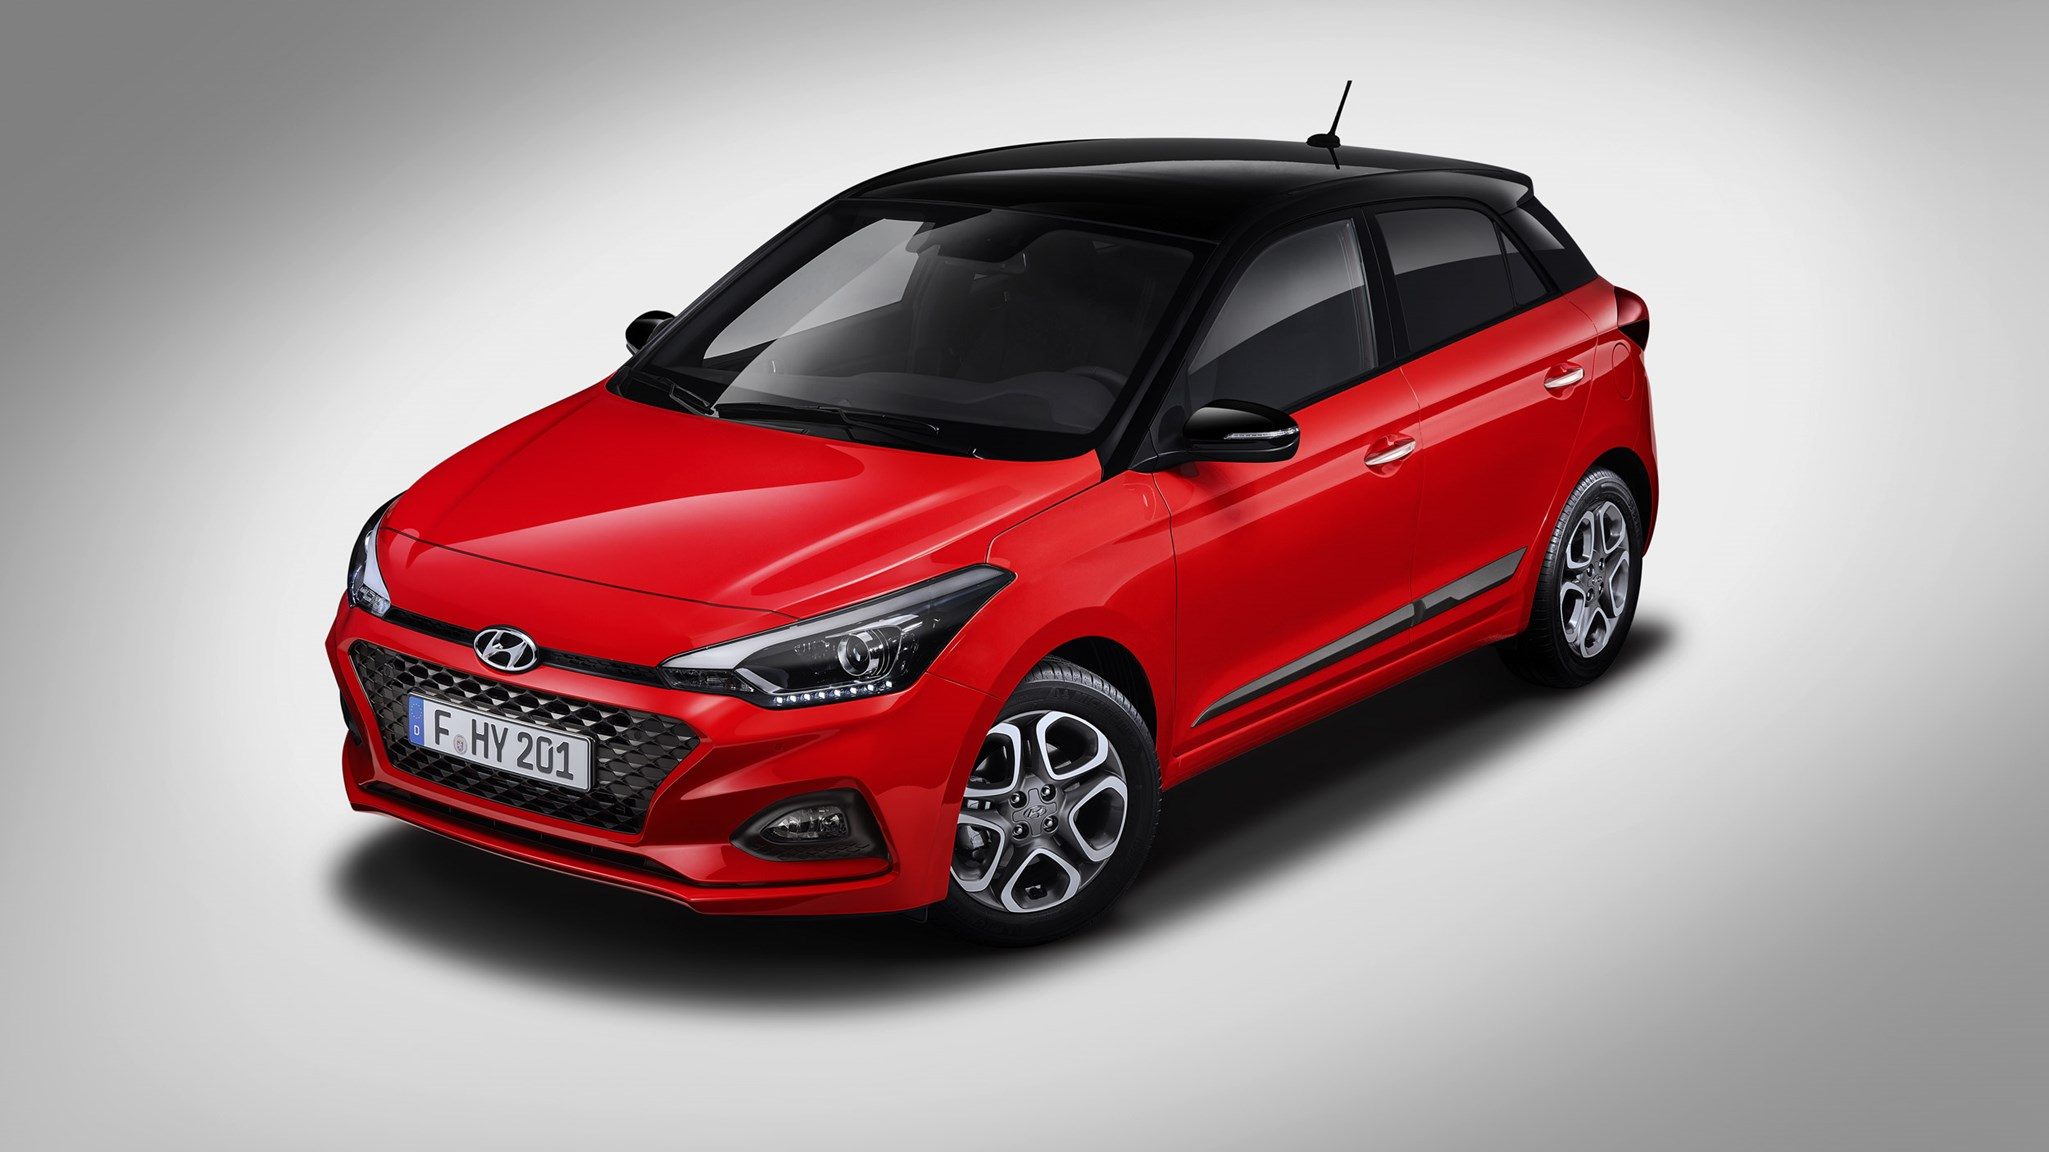 New Hyundai i20: B-segment hatch gets updated styling and ...